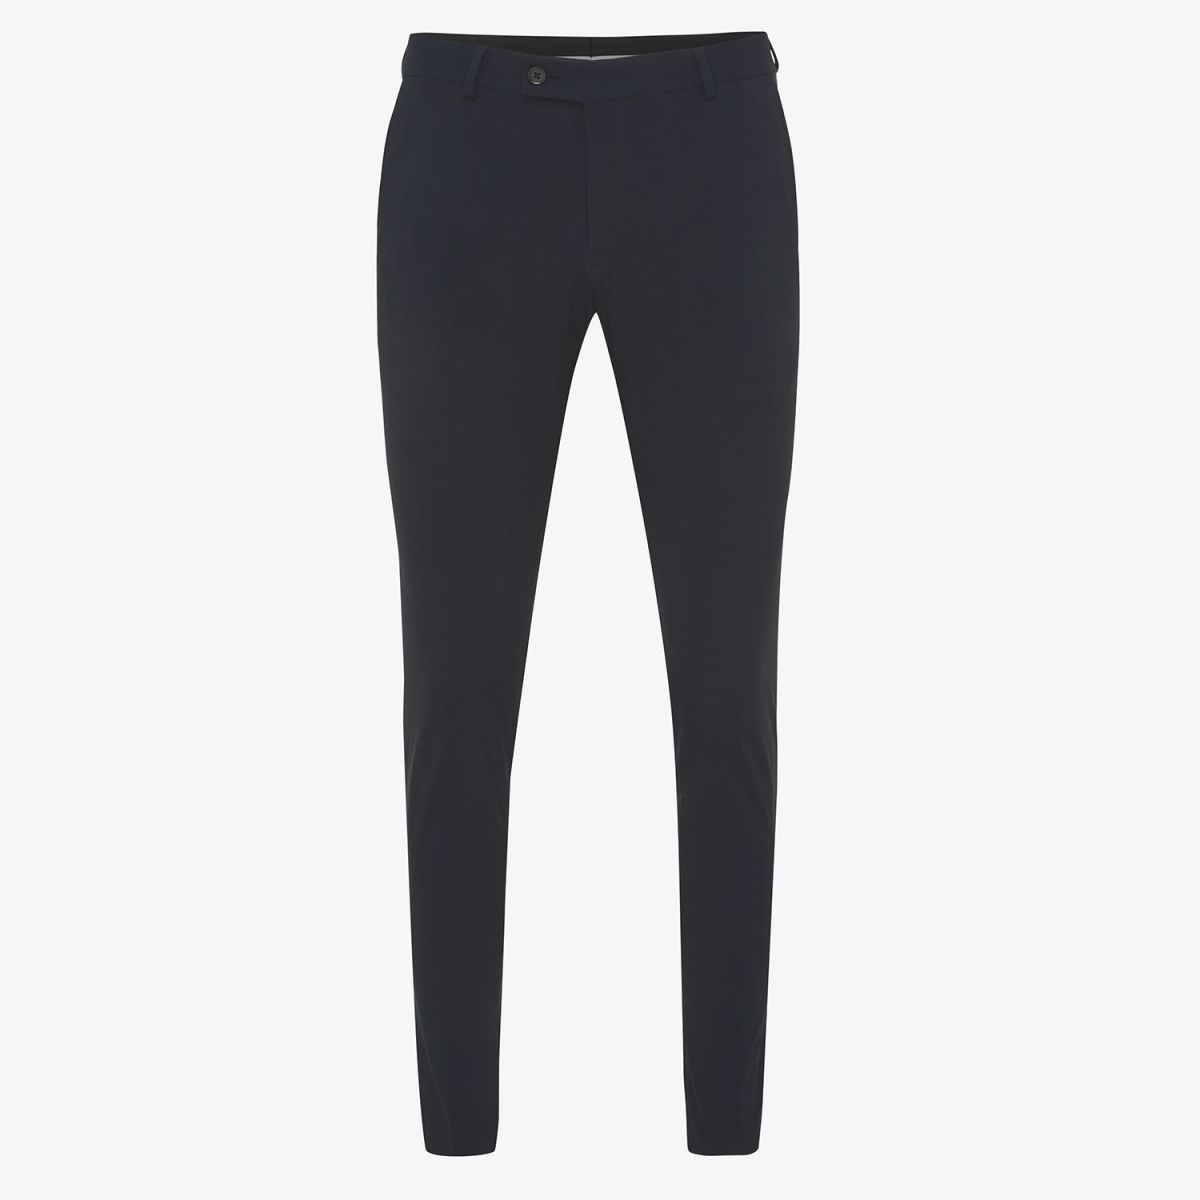 Dynamic stretch pantalon donkerblauw